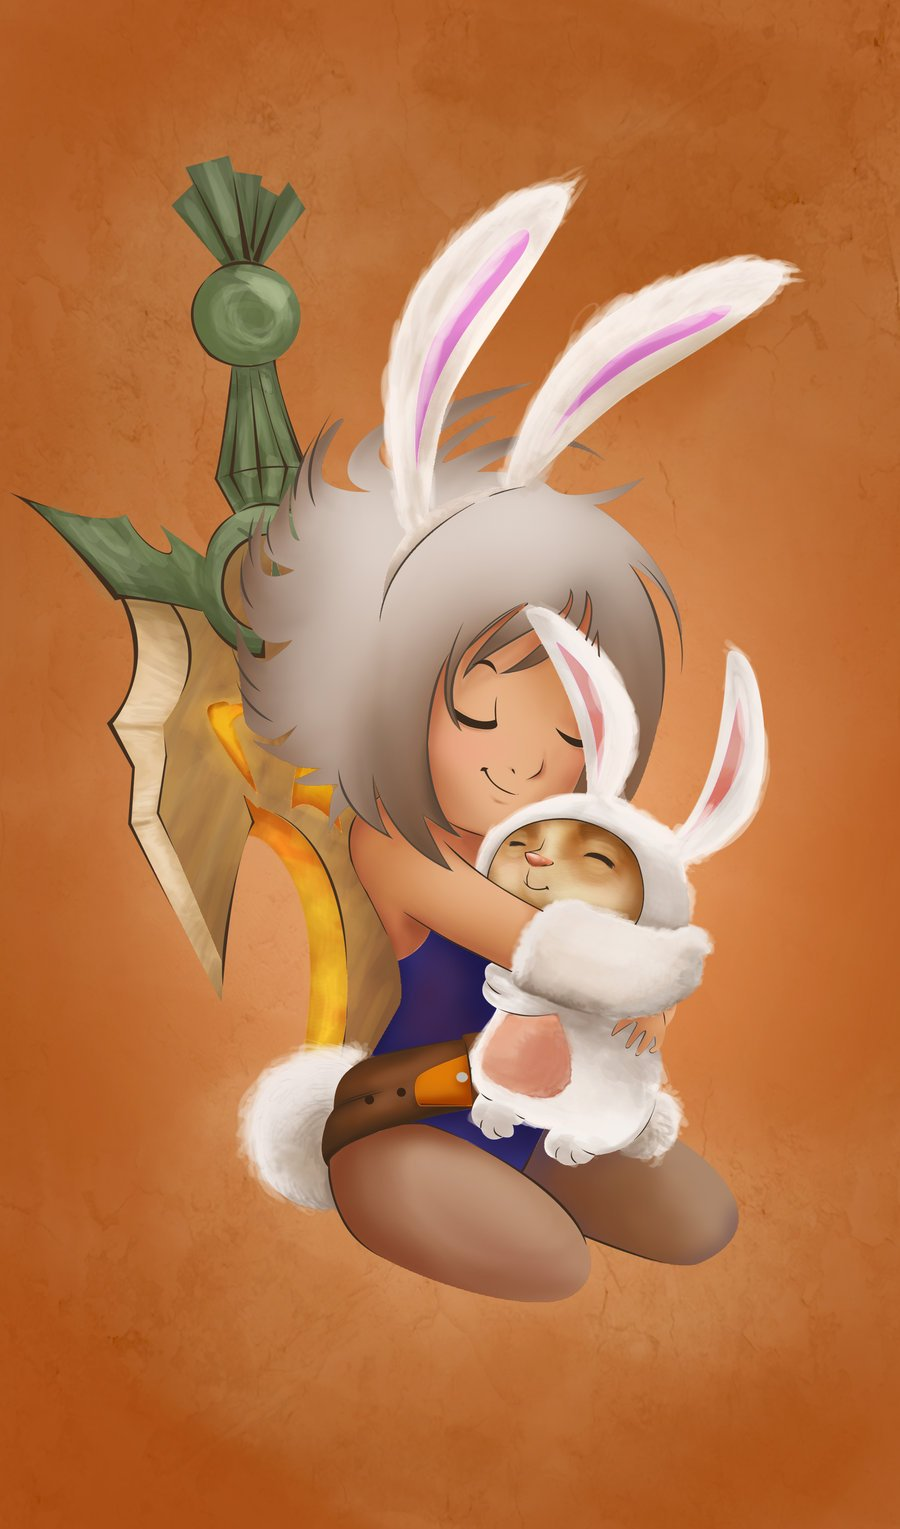 bunny_riven_and_bunny_teemo_by_happymeadow-d4yb22s